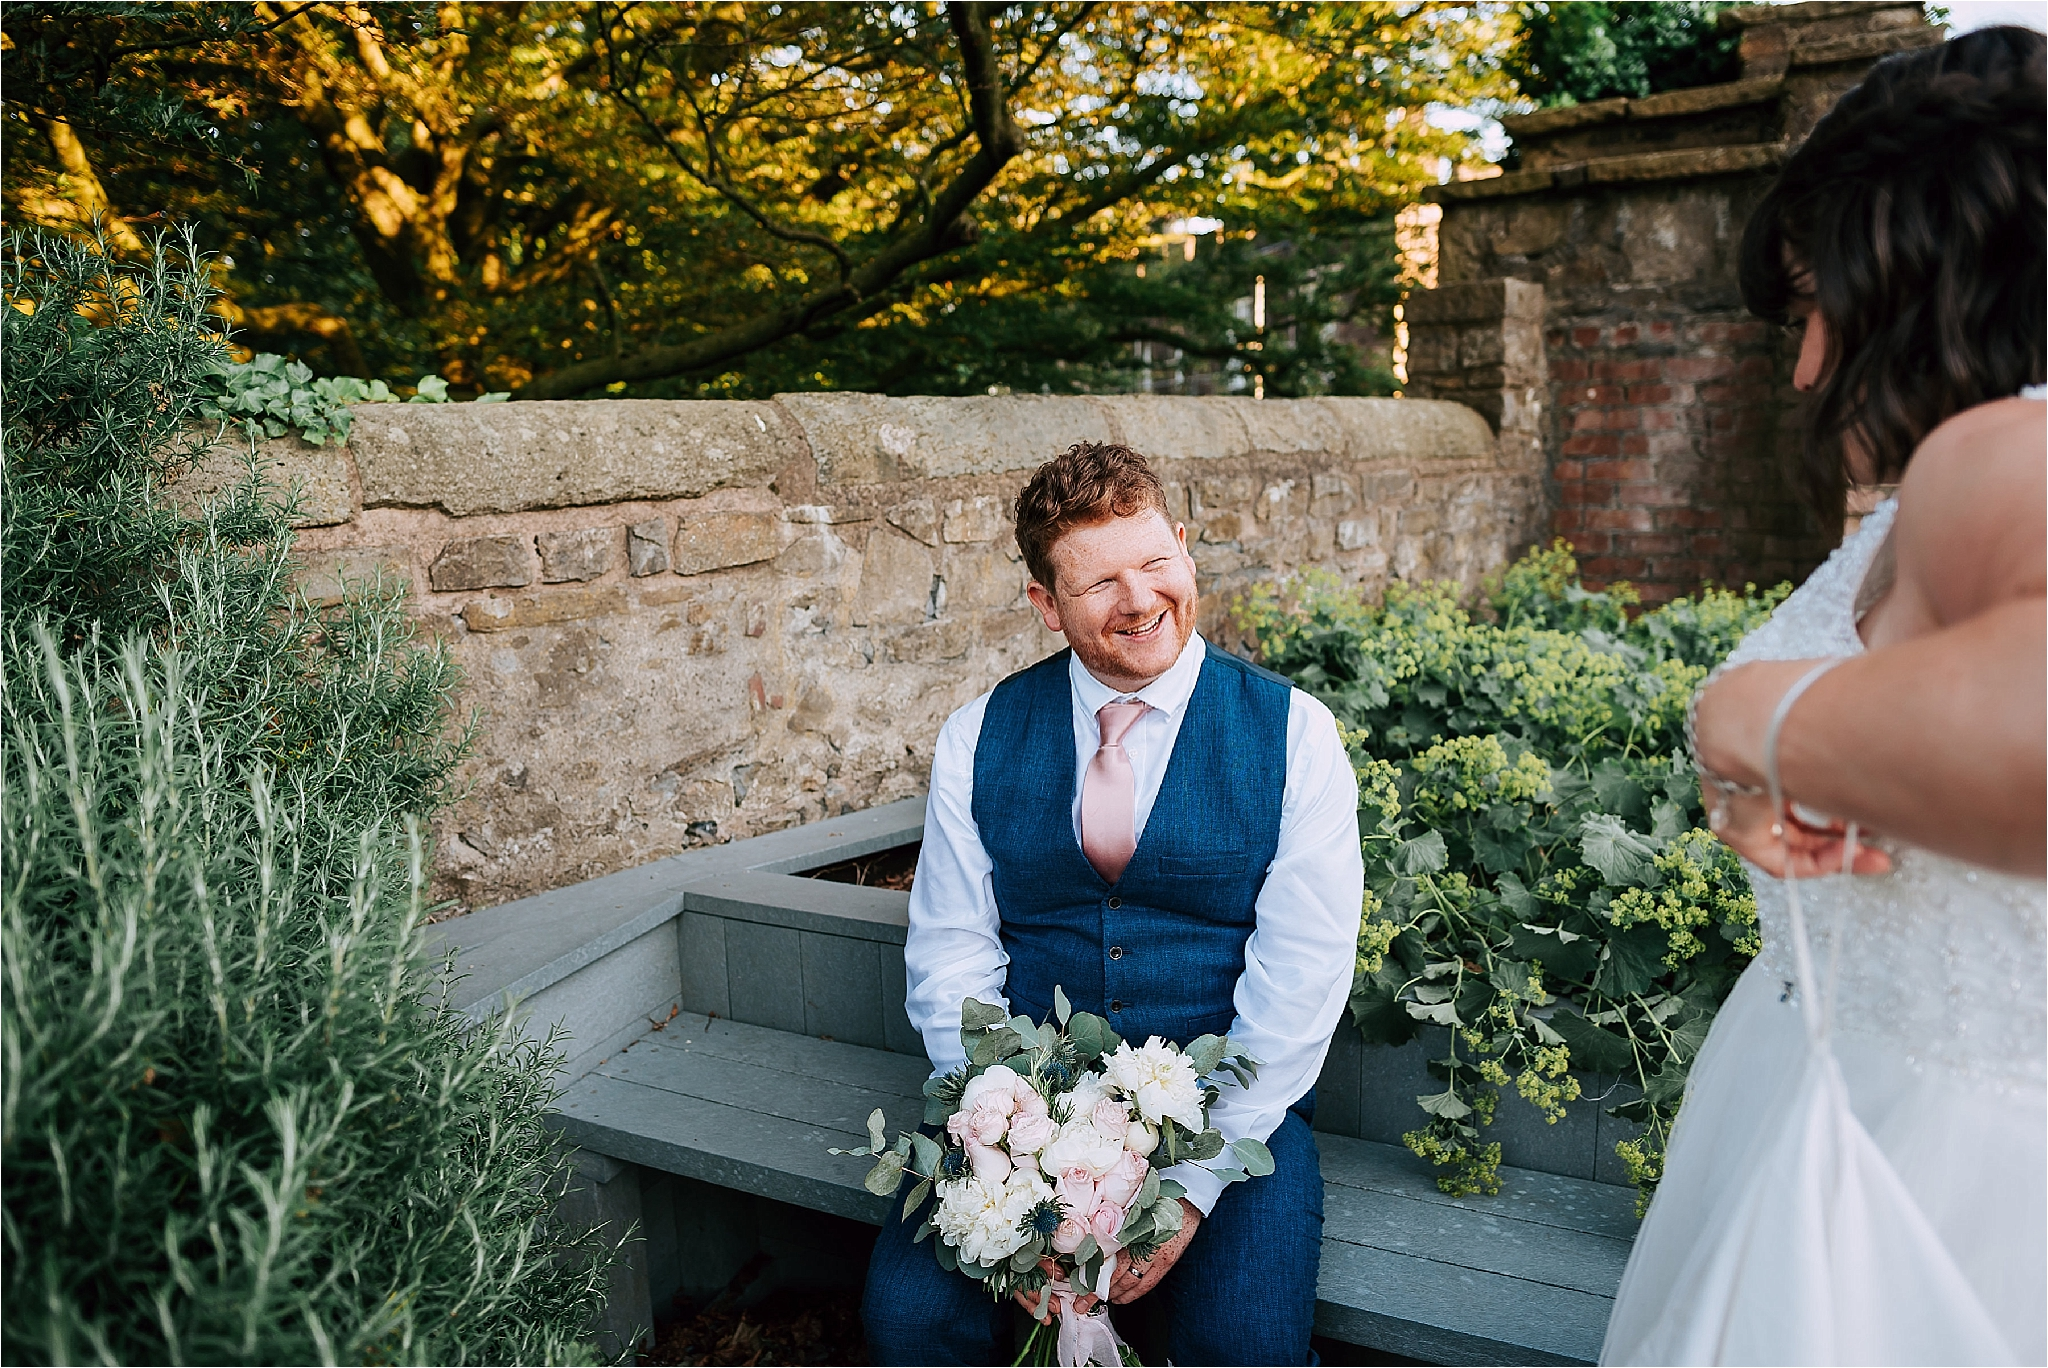 Groom after his wedding at the atrium at clitheroe castle